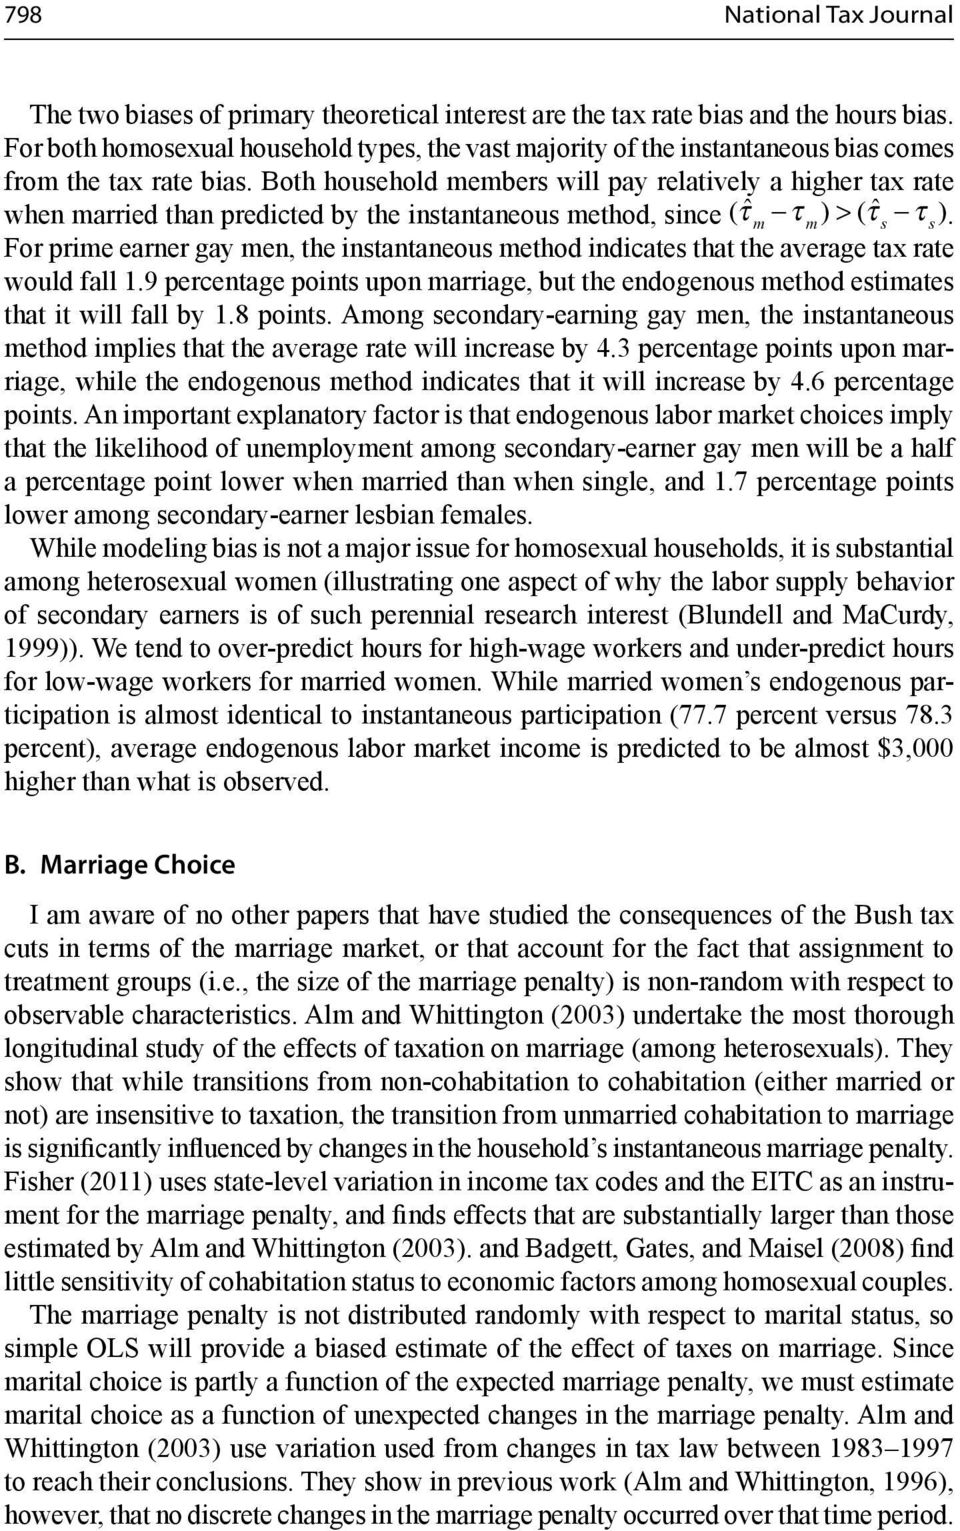 Both household members will pay relatively a higher tax rate when married than predicted by the instantaneous method, since ( ˆ τ τ ) > (ˆ τ τ ) m m s s.